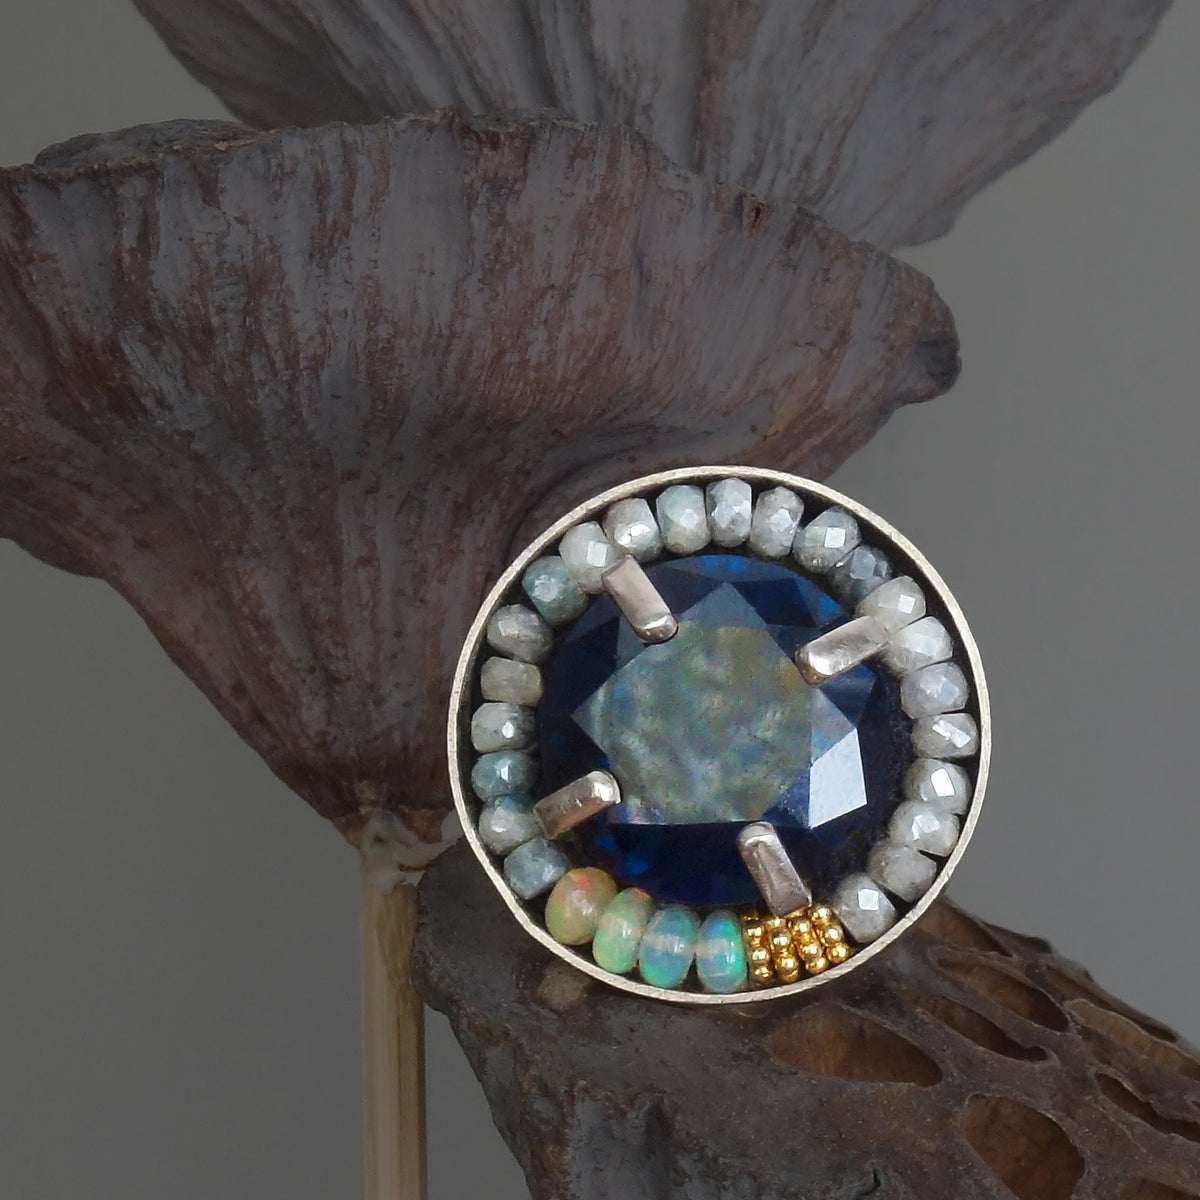 London Blue Topaz, Opals, and Gold mosaic ring